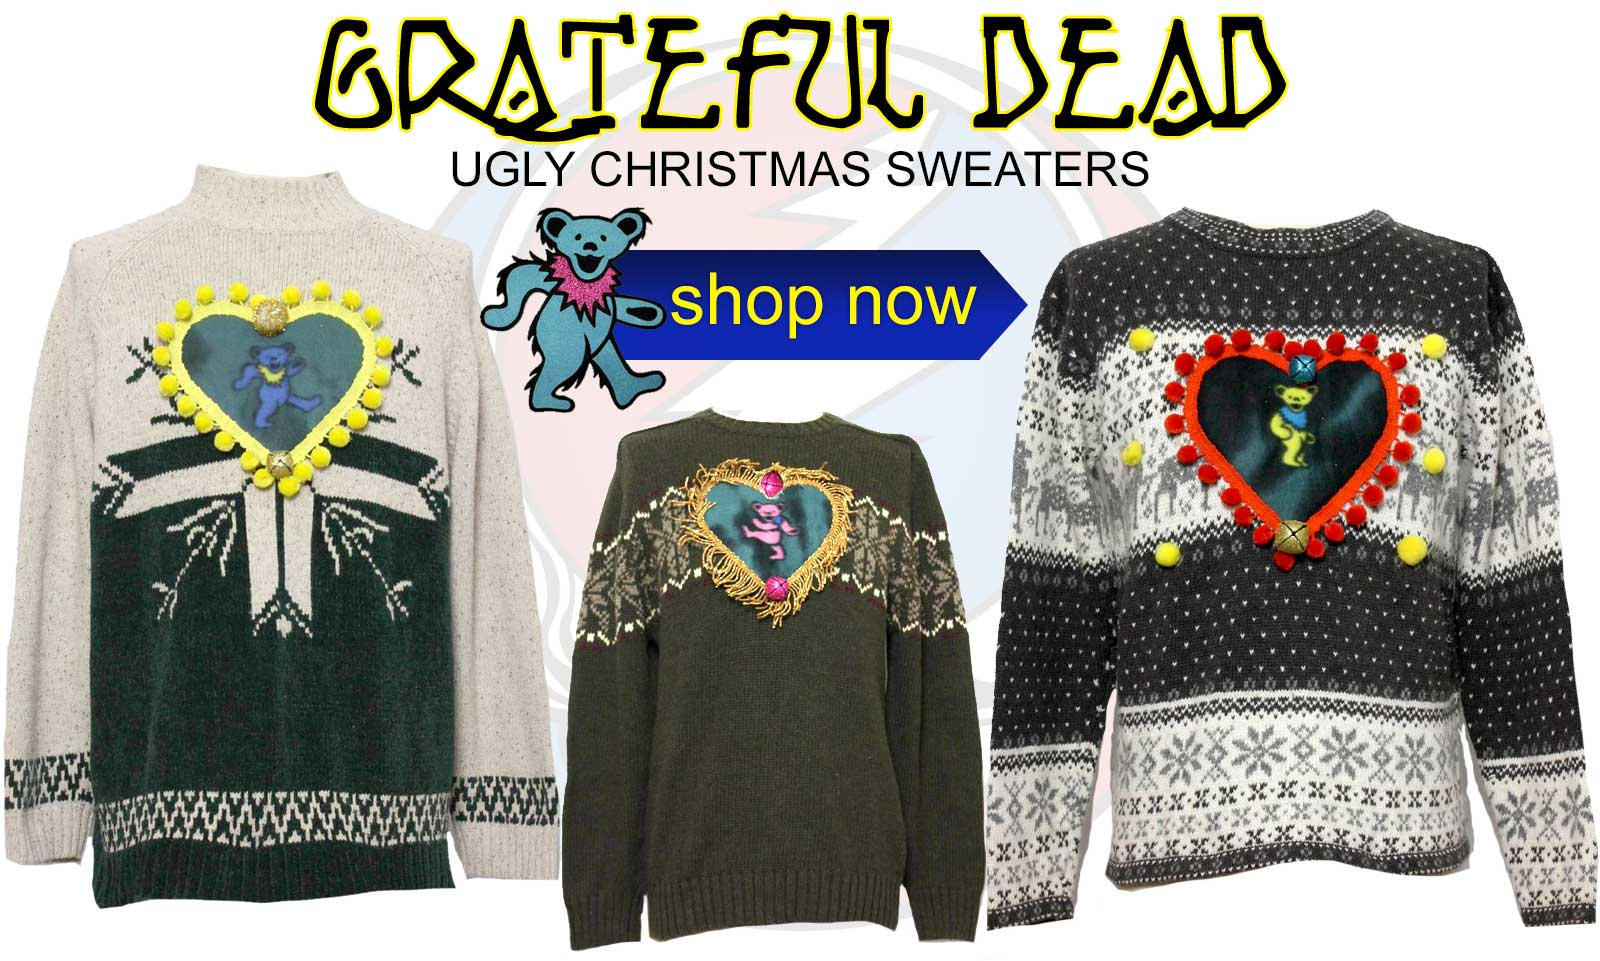 Dead Head Ugly Christmas Sweaters at RustyZipper.com